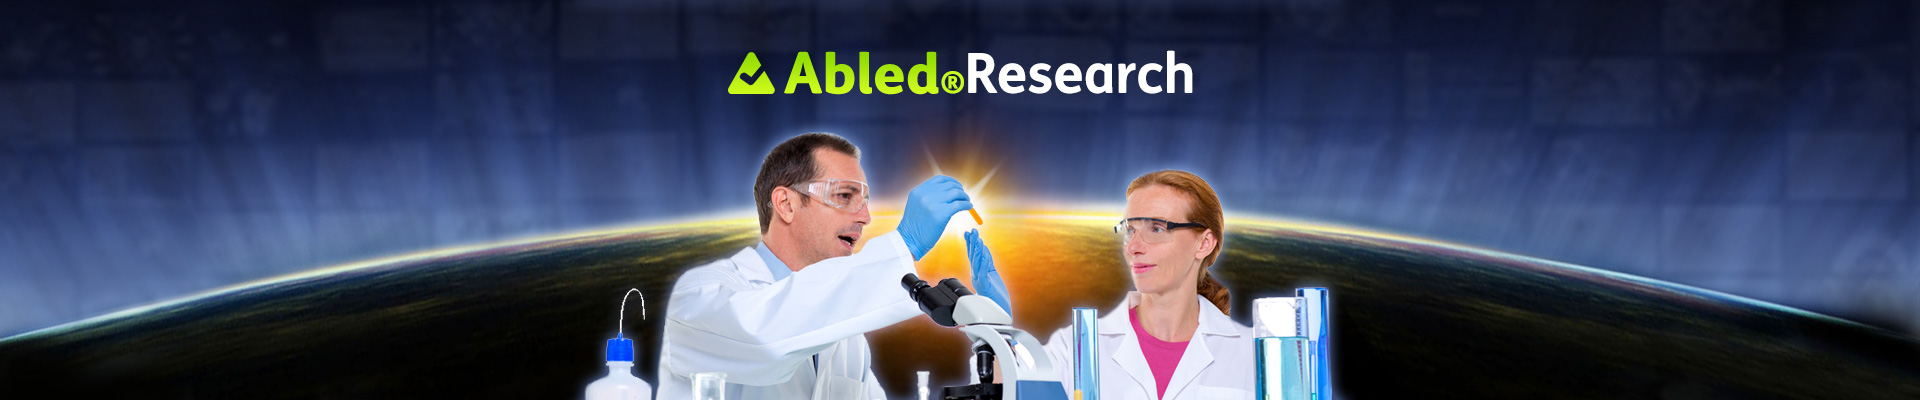 AbledResearch Banner shows two scientists sitting by a microscope in a lab checking a vial of something. The image is in the foreground with a photo of the earth at sunrise as seen from space with the AbledResearch logo at the top.